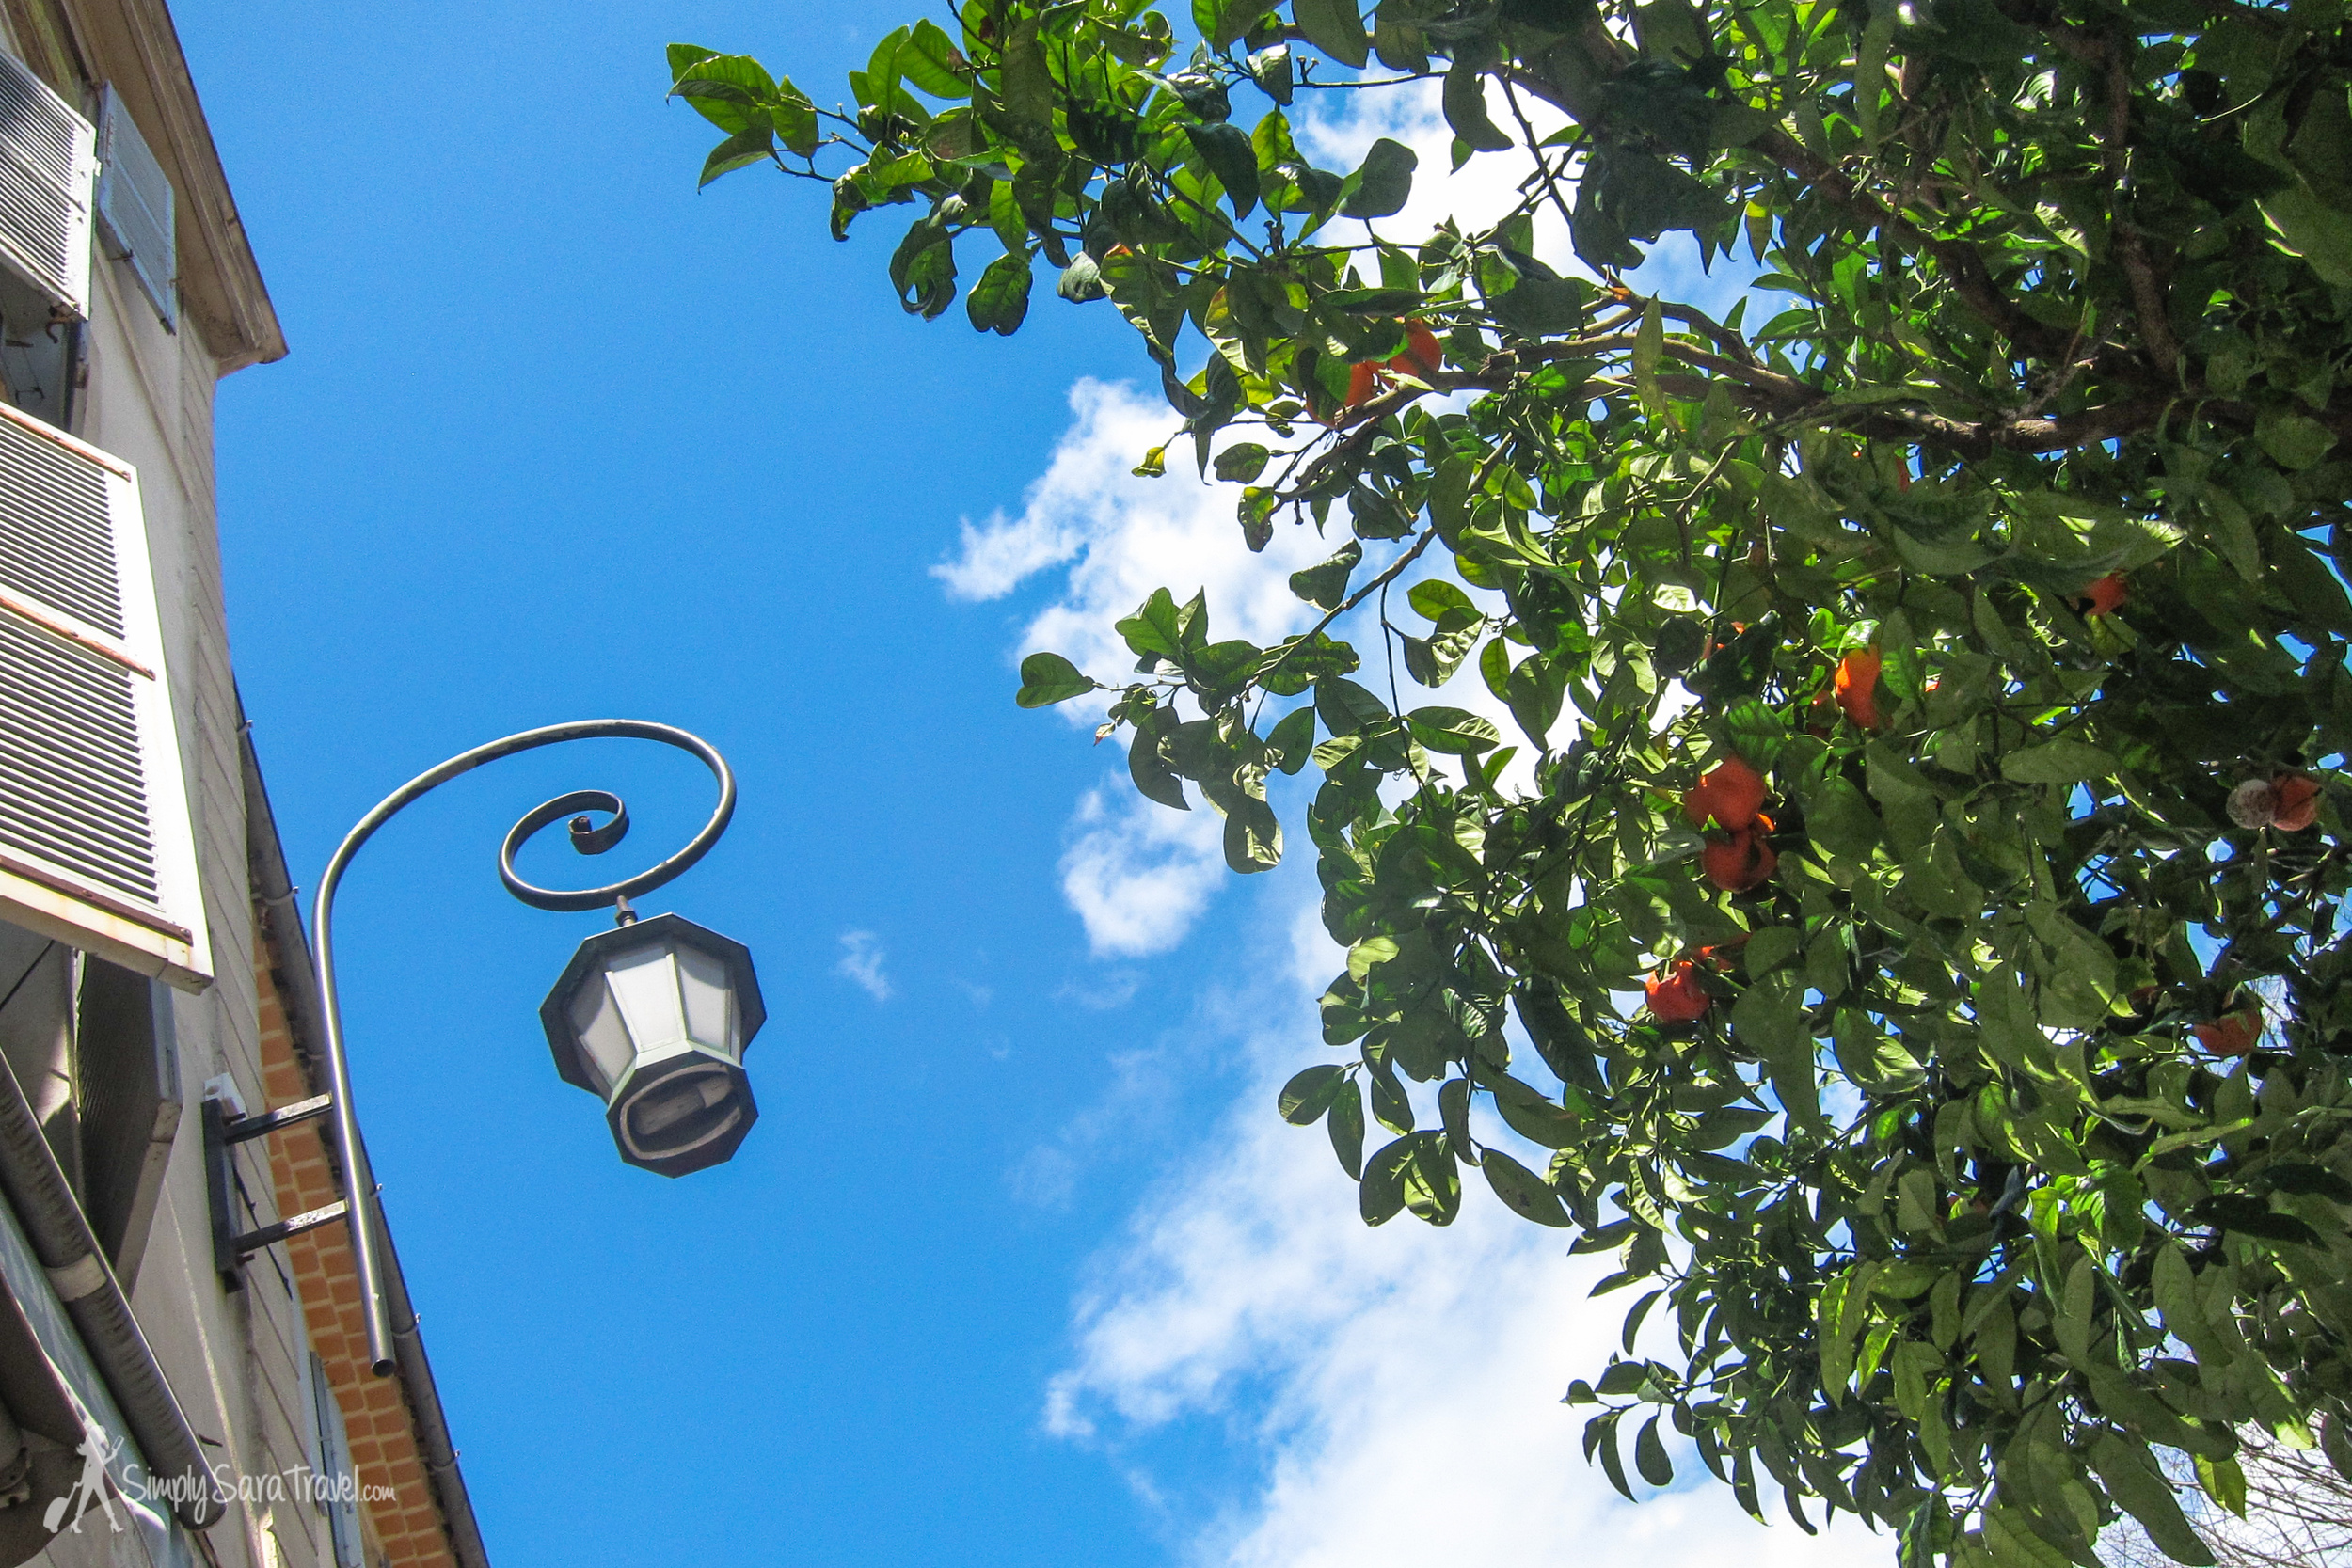 My attempt to capture the moment of sitting at that café, underneath brilliant blue skies and a vibrant orange tree.